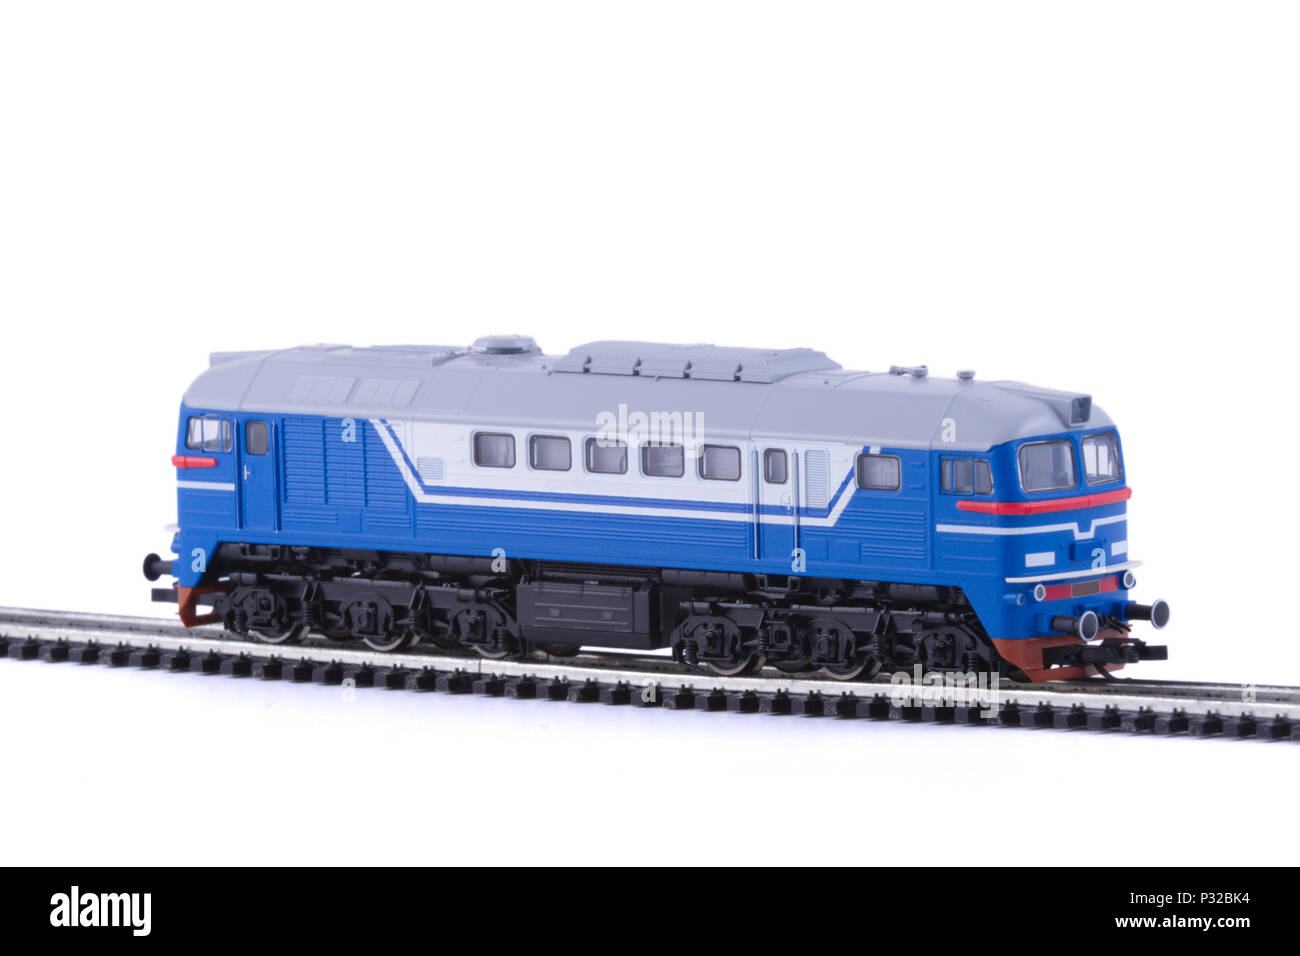 The Diesel locomotive. - Stock Image